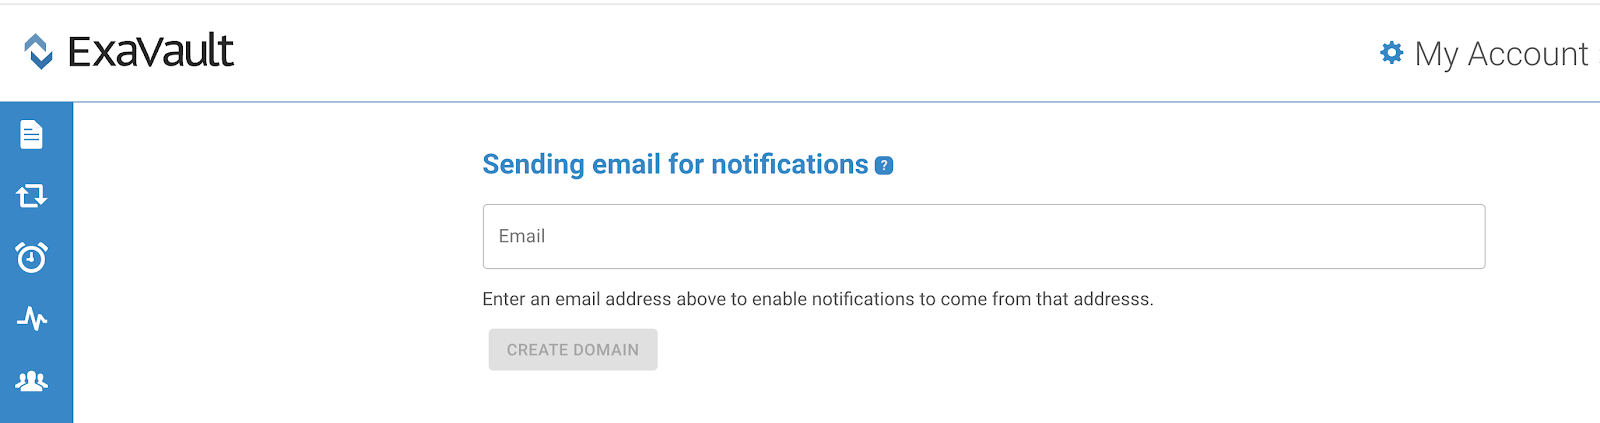 Customize sending email for notifications.